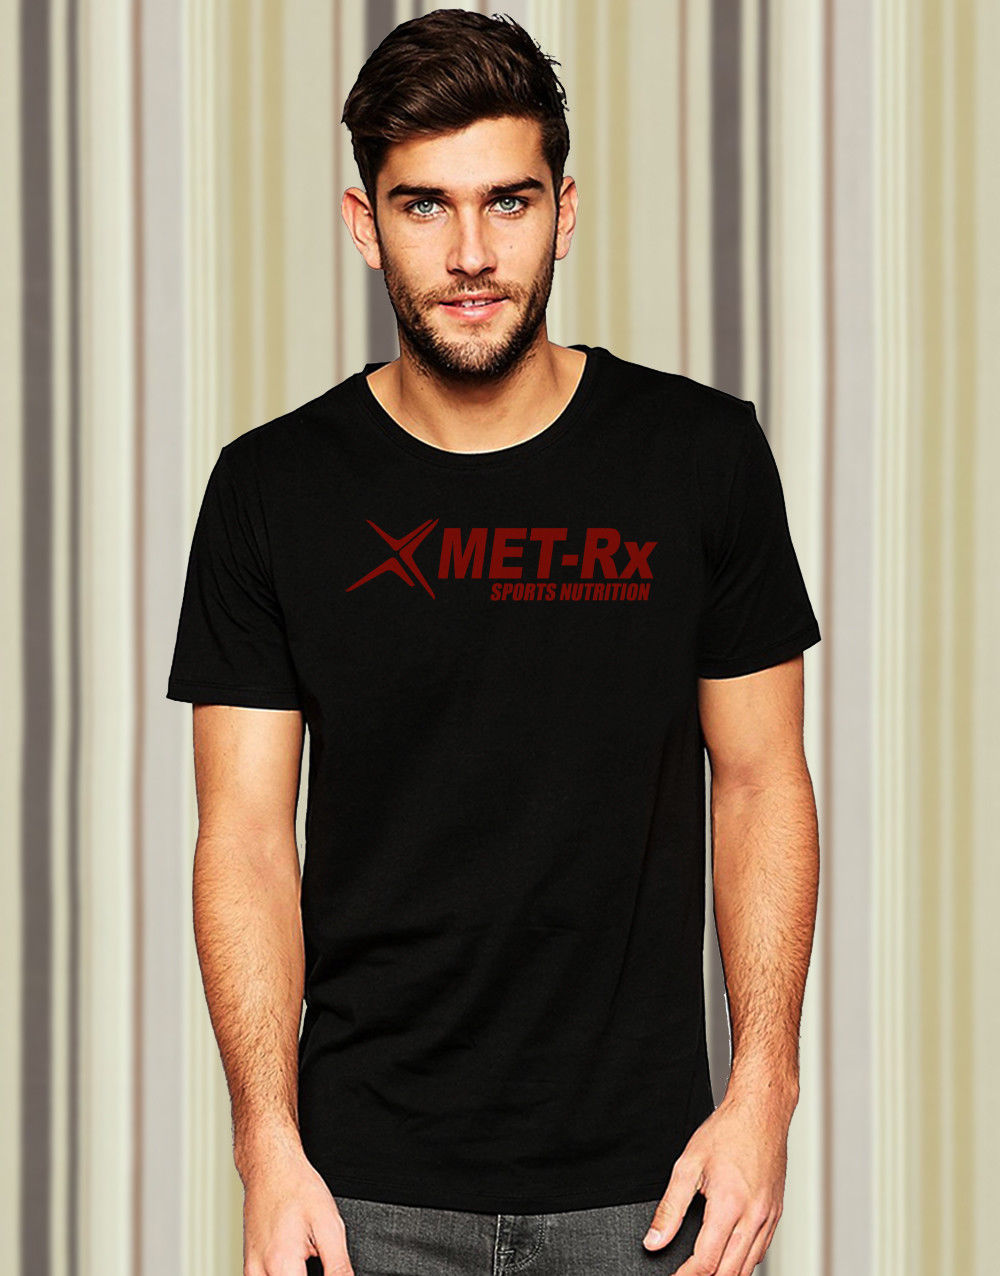 New Mett Rx Sports Nutrition Custom Tee Shirt Casual Short Sleeve